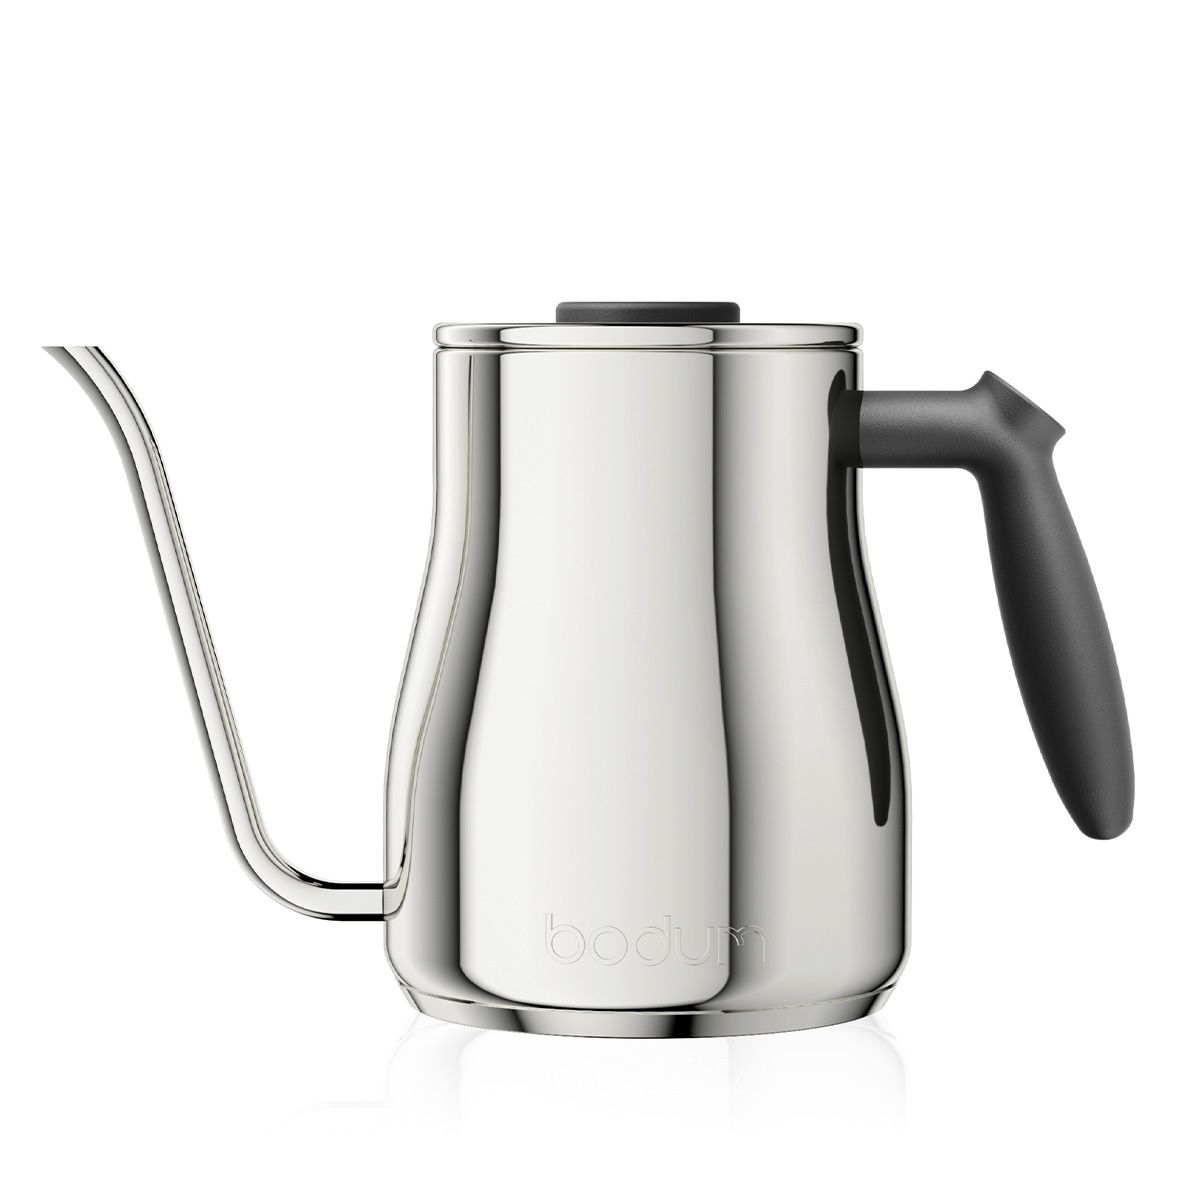 Water Kettle BISTRO Bodum